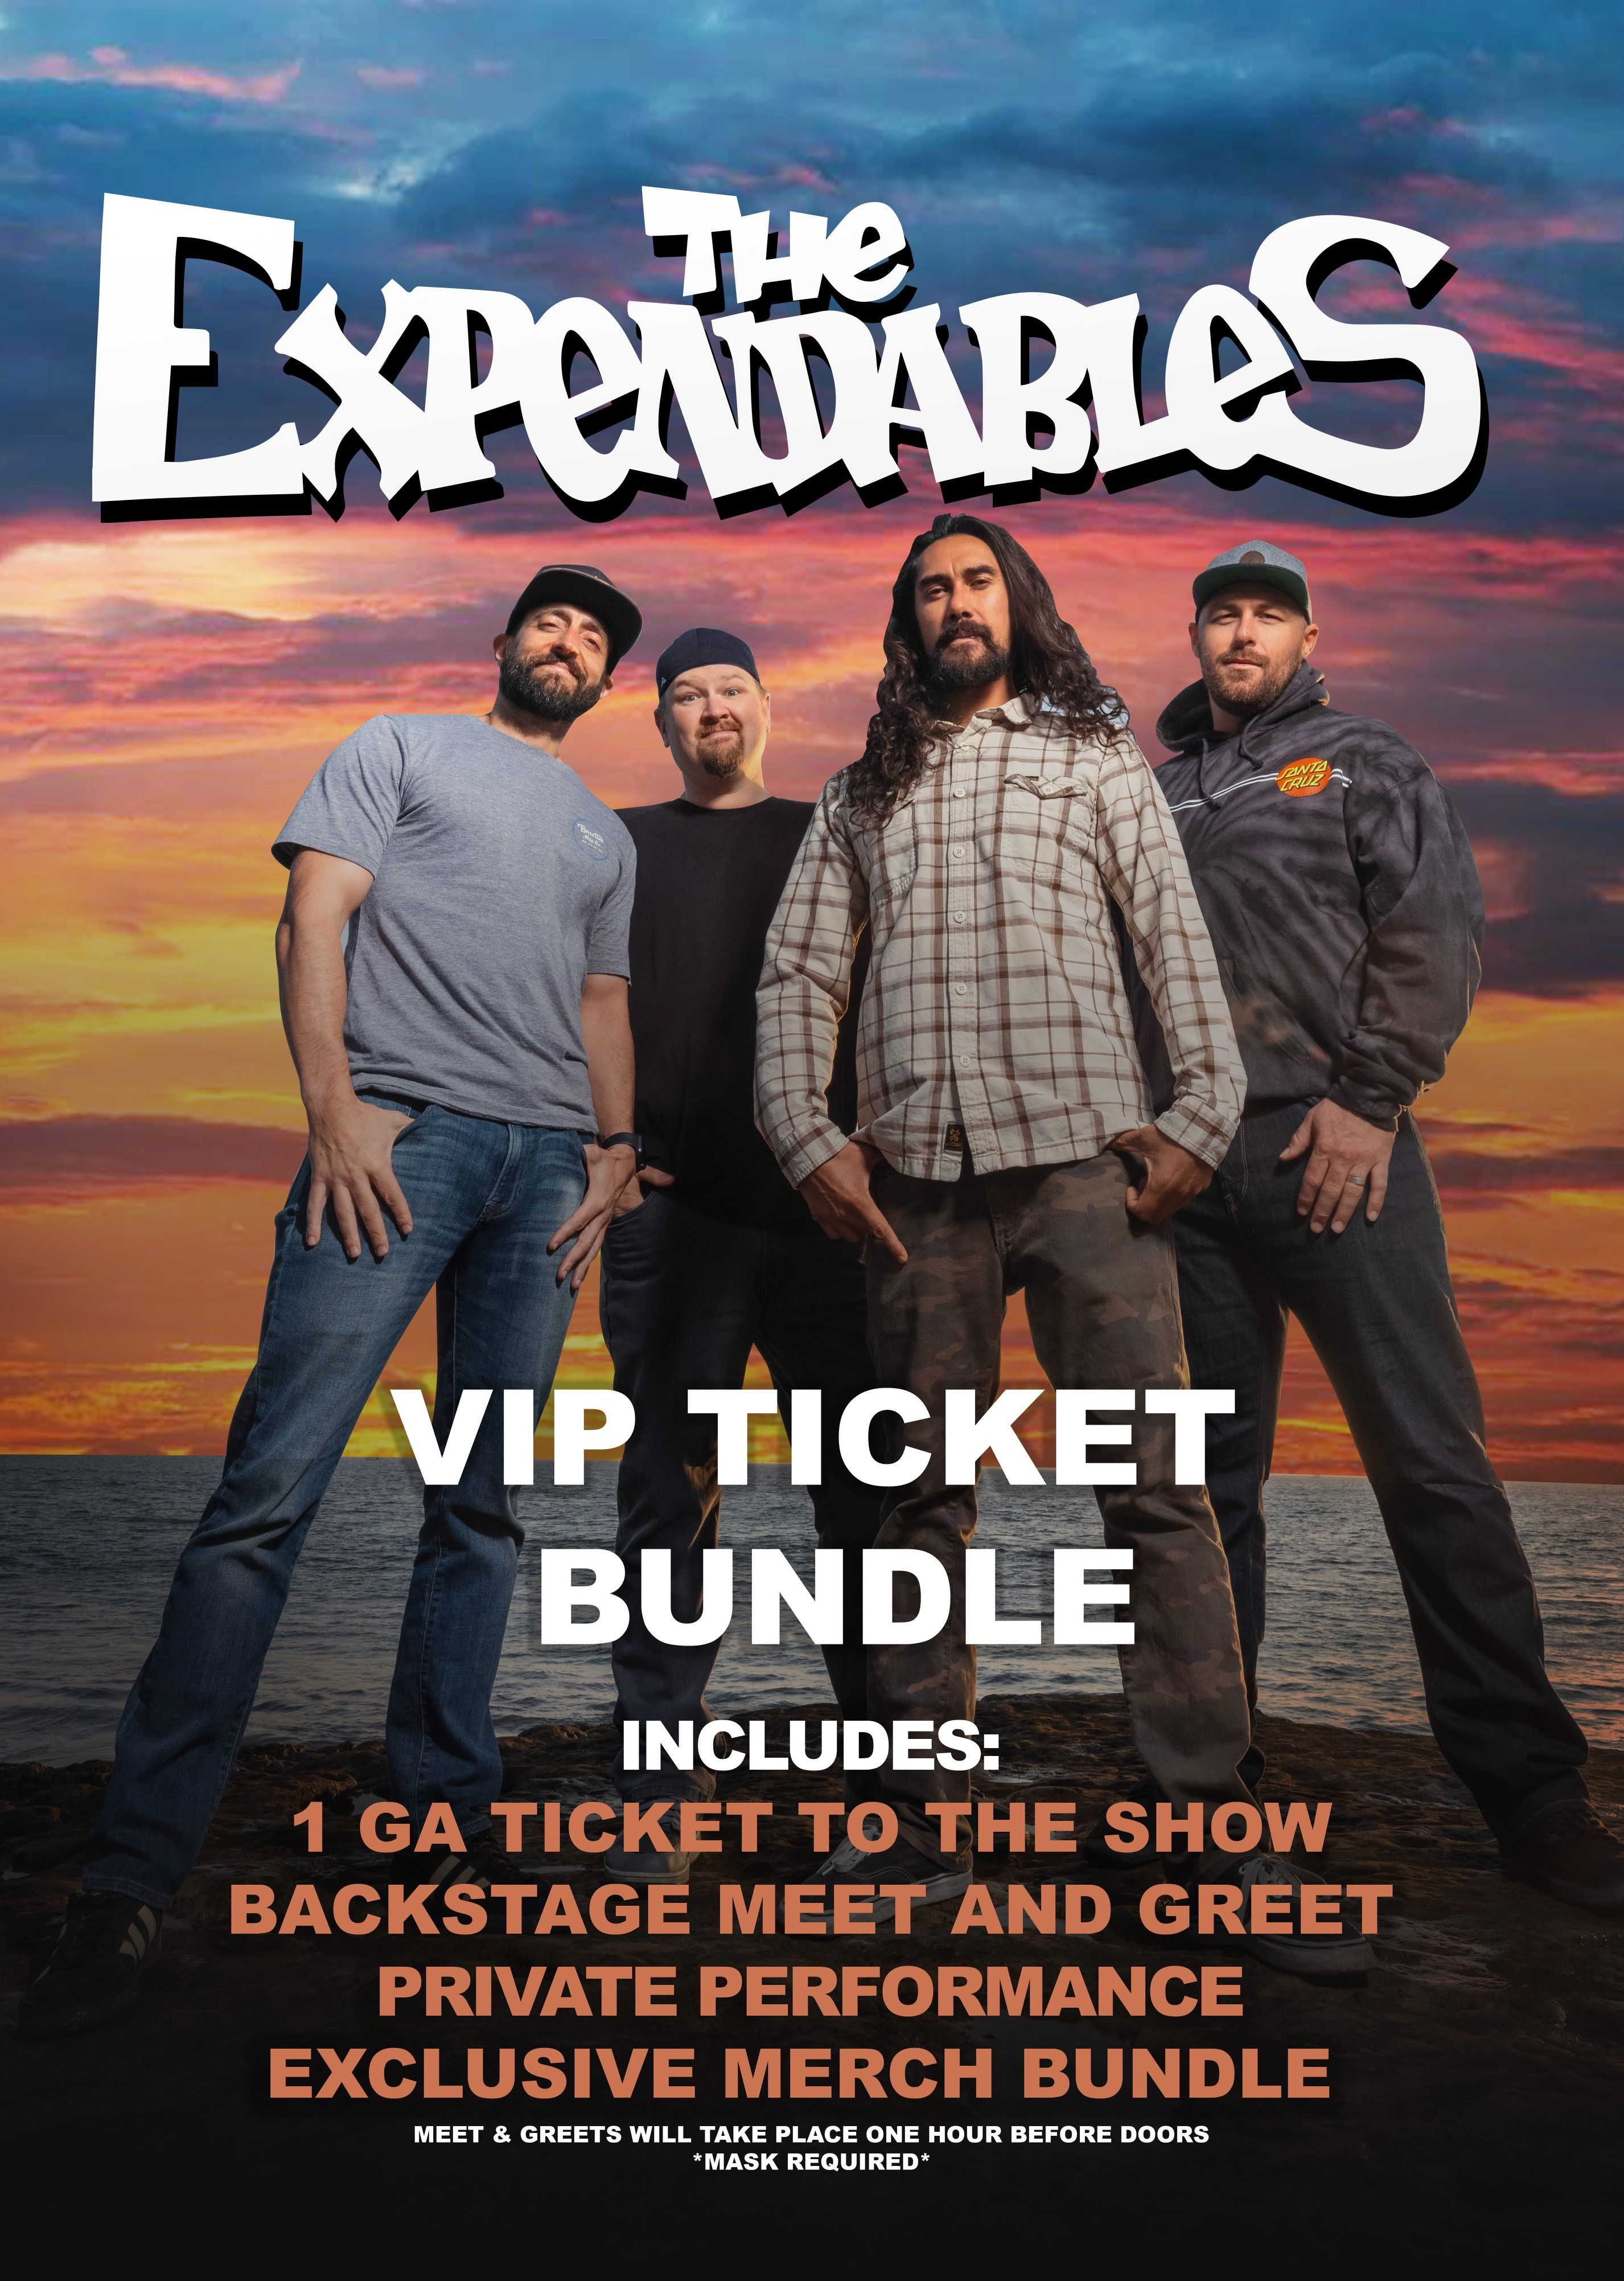 ExpendaHoo! VIP (The Expendables) at Vinyl Music Hall: